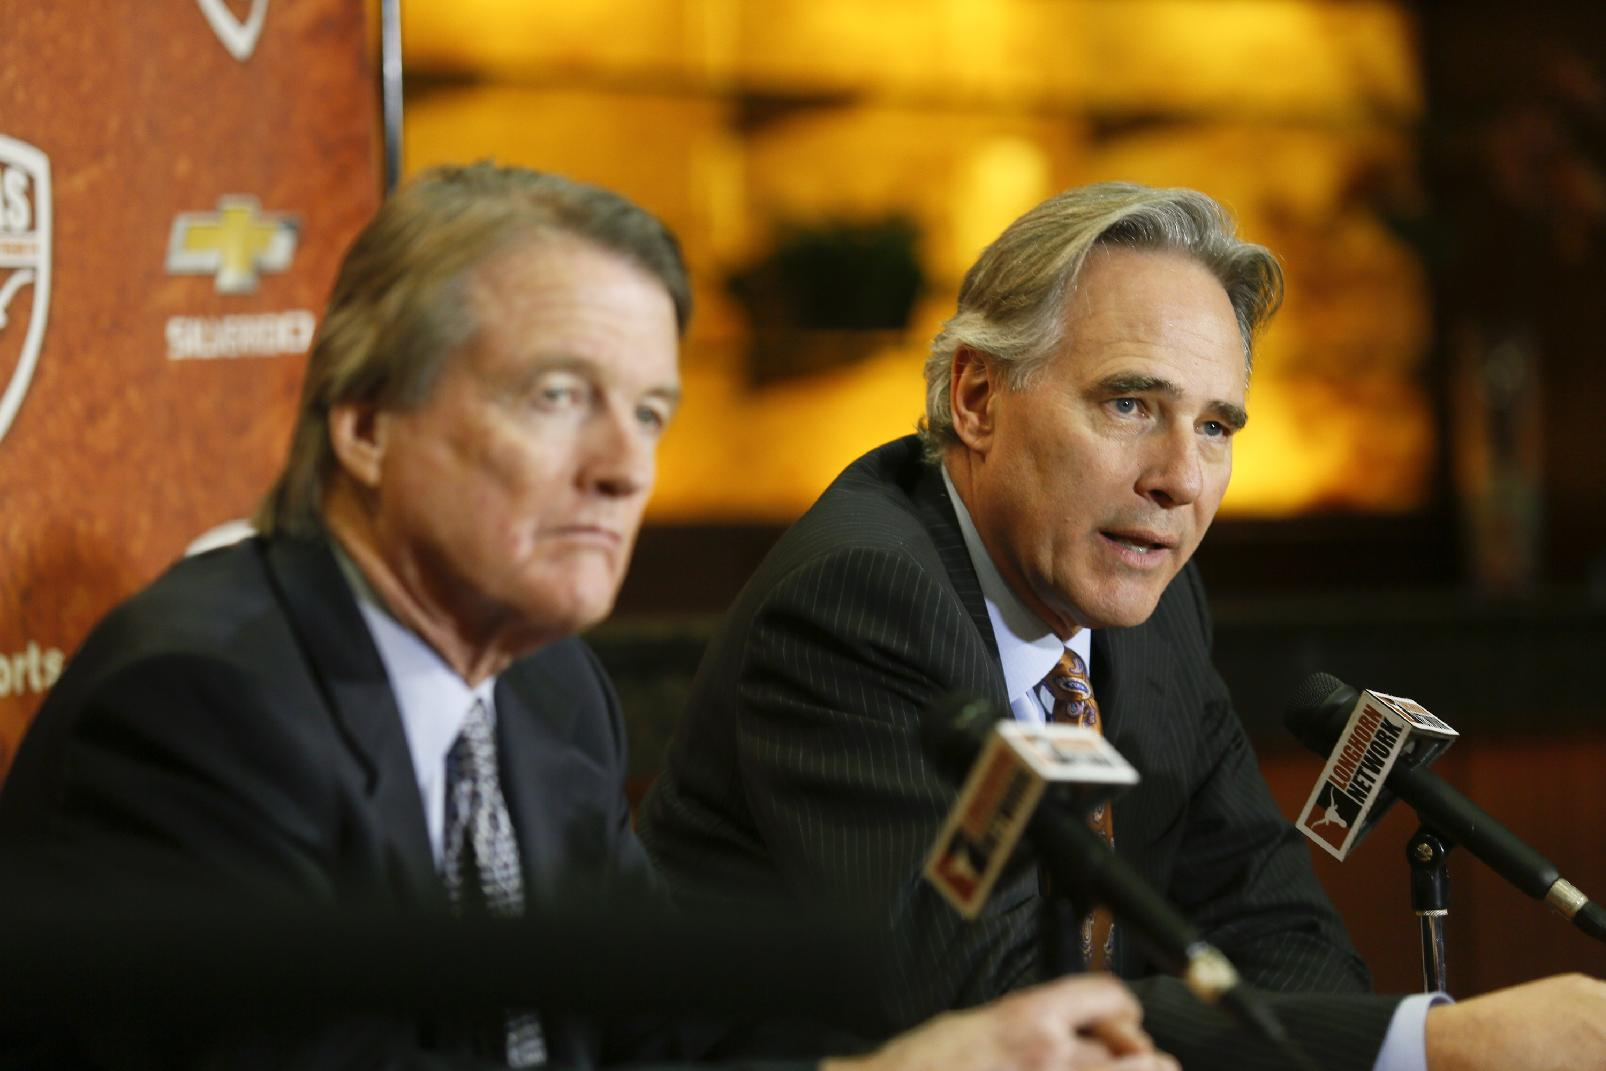 University of Texas president Bill Powers, left, and athletic director Steve Patterson discuss a search for a new head football coach in Austin, Texas on Sunday, Dec. 15, 2013. Current coach Mack Brown announced he was stepping down from the position following the Valero Alamo Bowl on Dec. 30